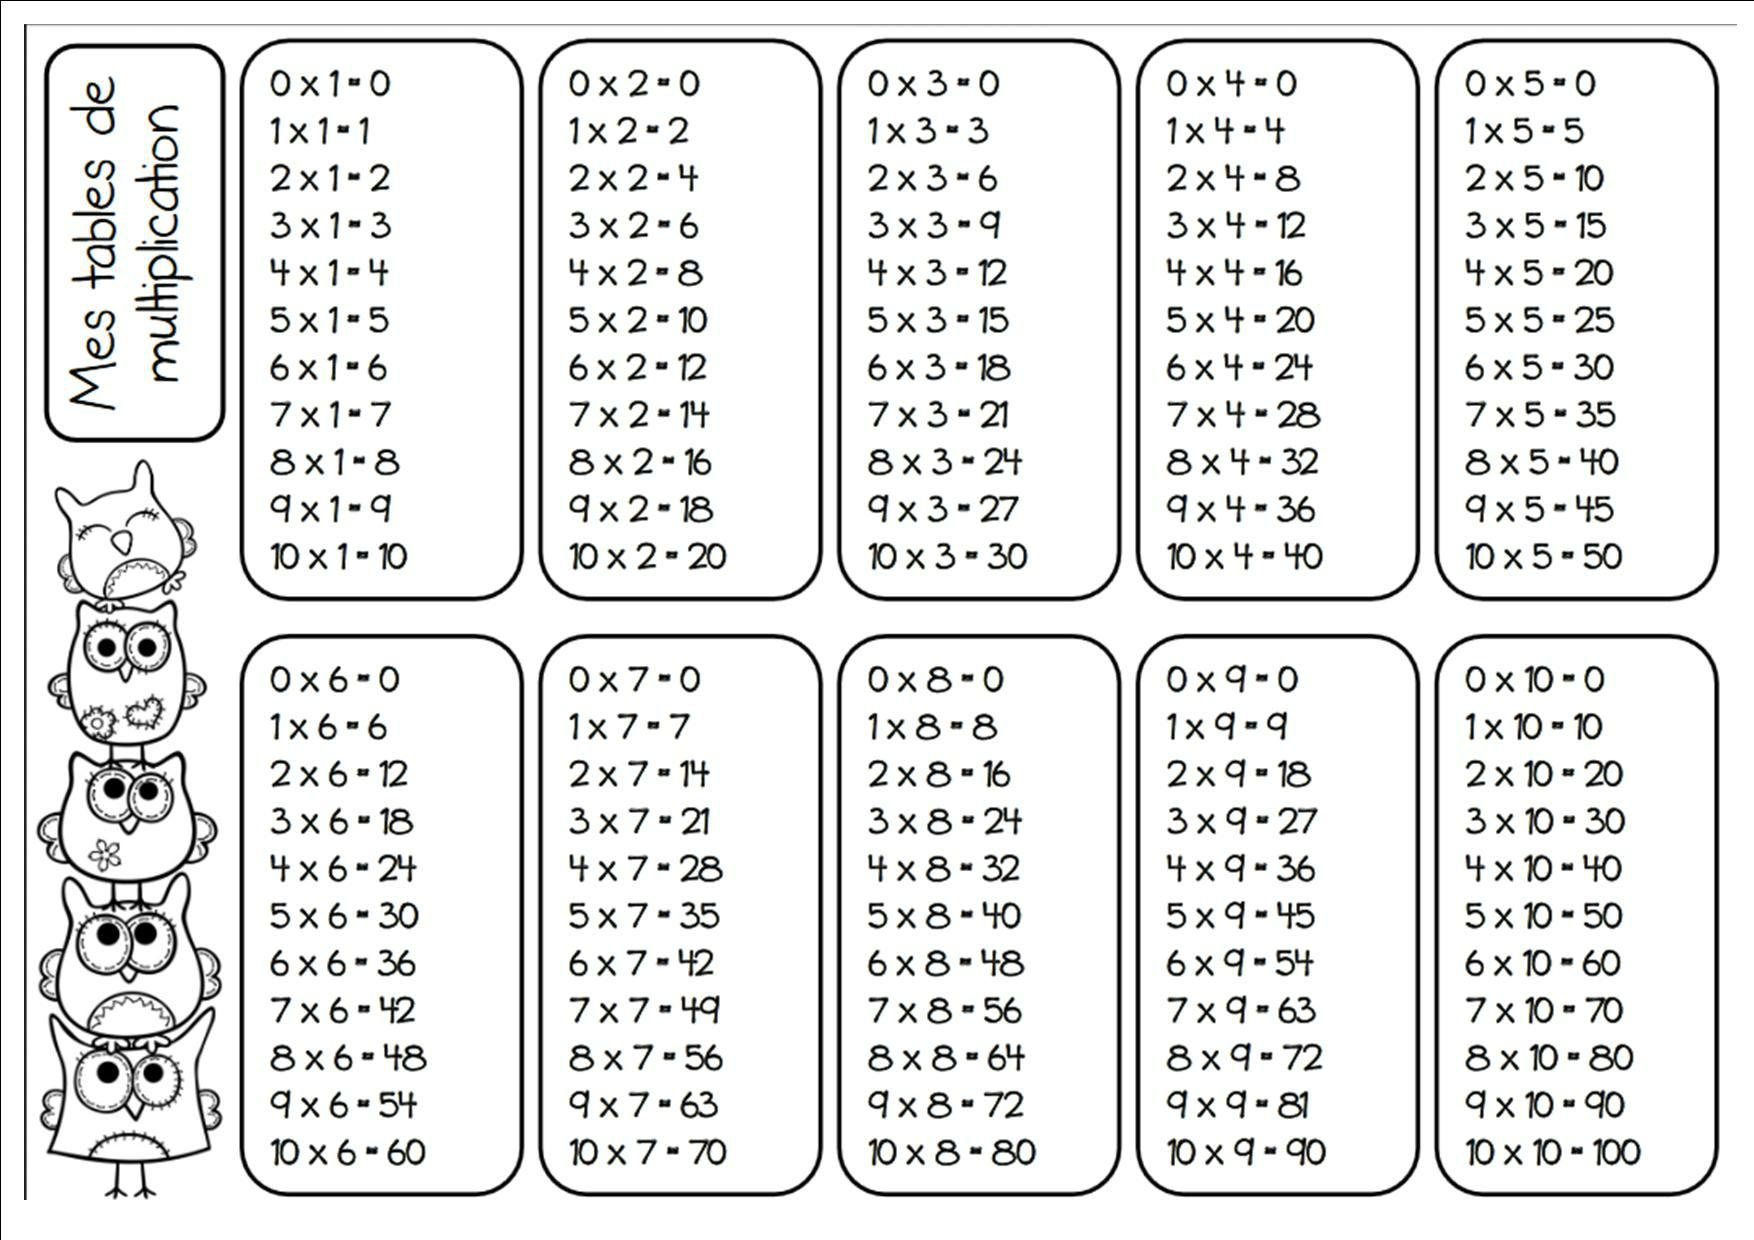 Maths 8 ce2 la multiplication la classe des ce de villebois maths num ration pinterest - Exercice tables de multiplication ce2 ...